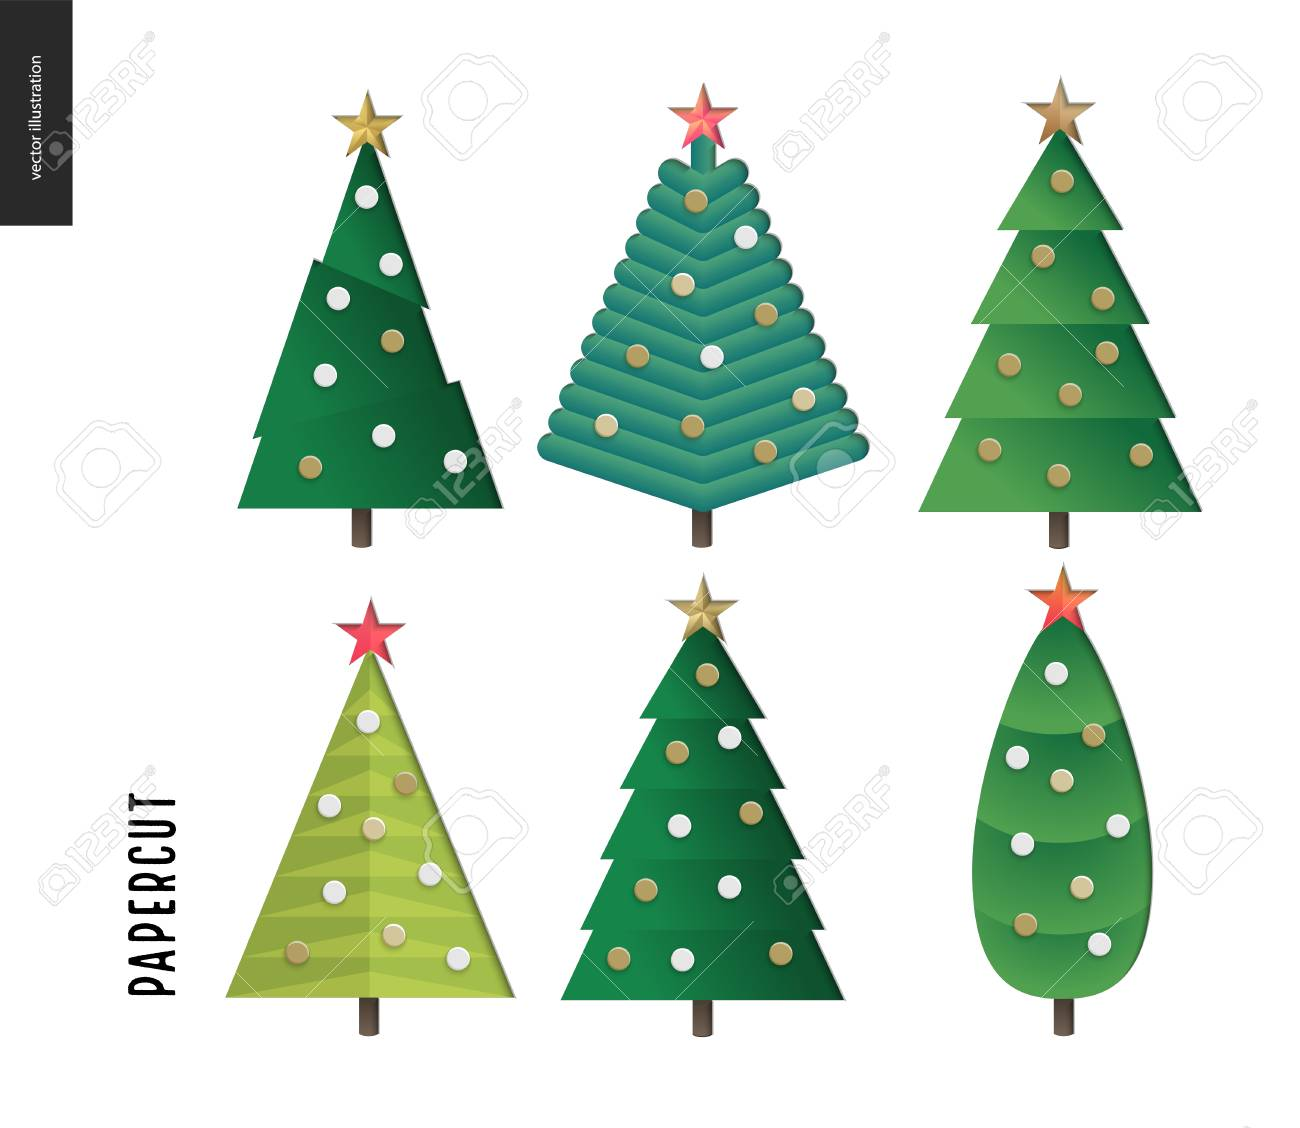 Papercut - Decorated Christmas Trees Set. 3D Cut Out Vector ...